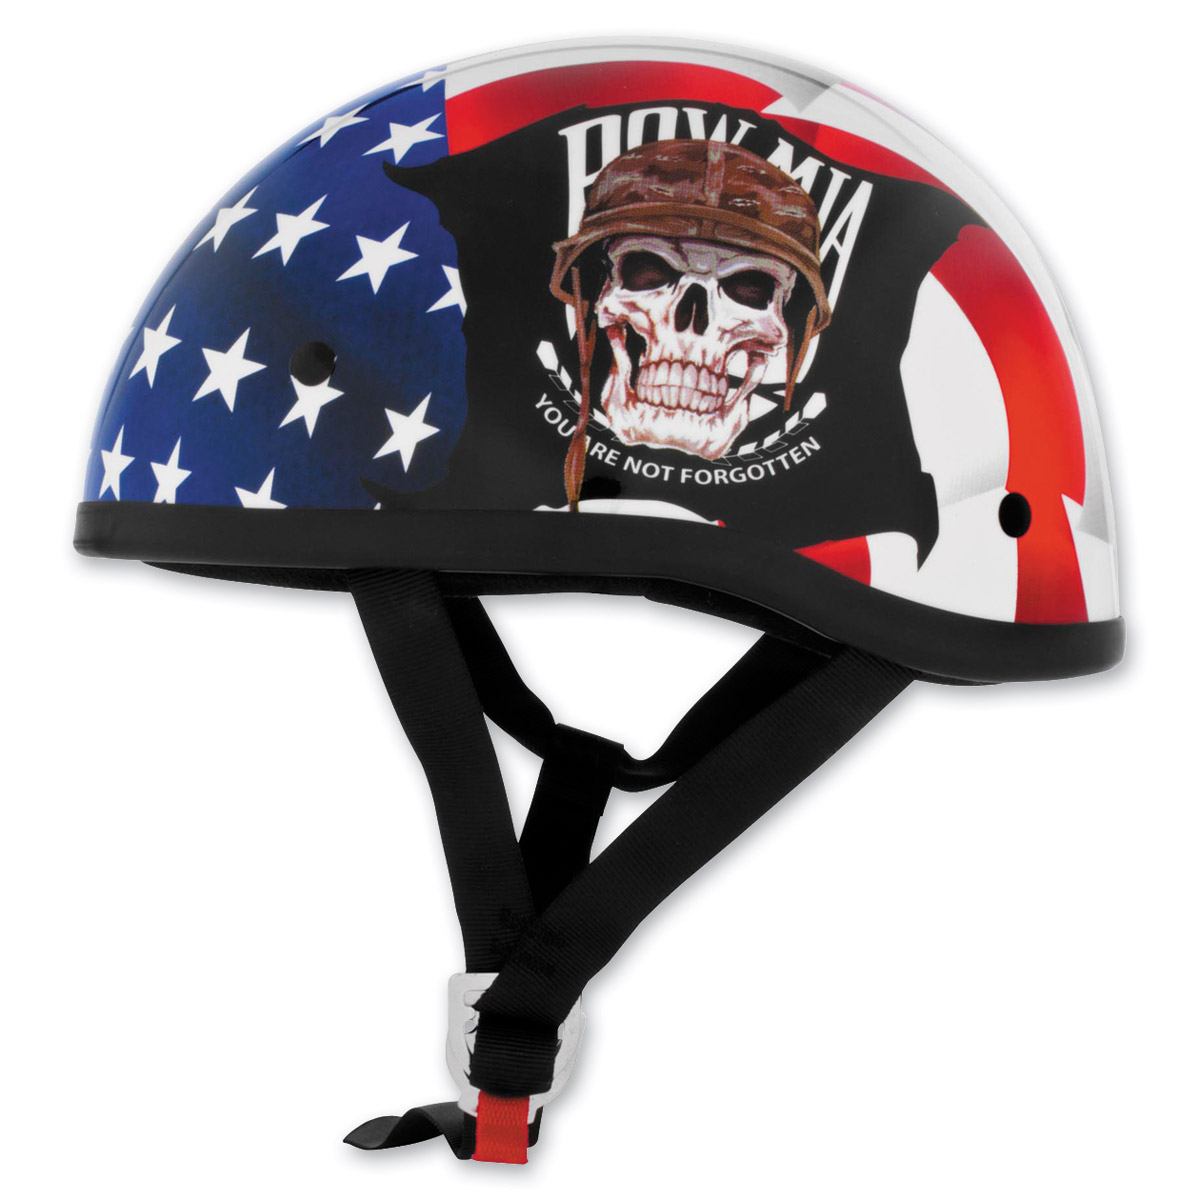 Skid Lid Original POW MIA Red, White, and Blue Half Helmet